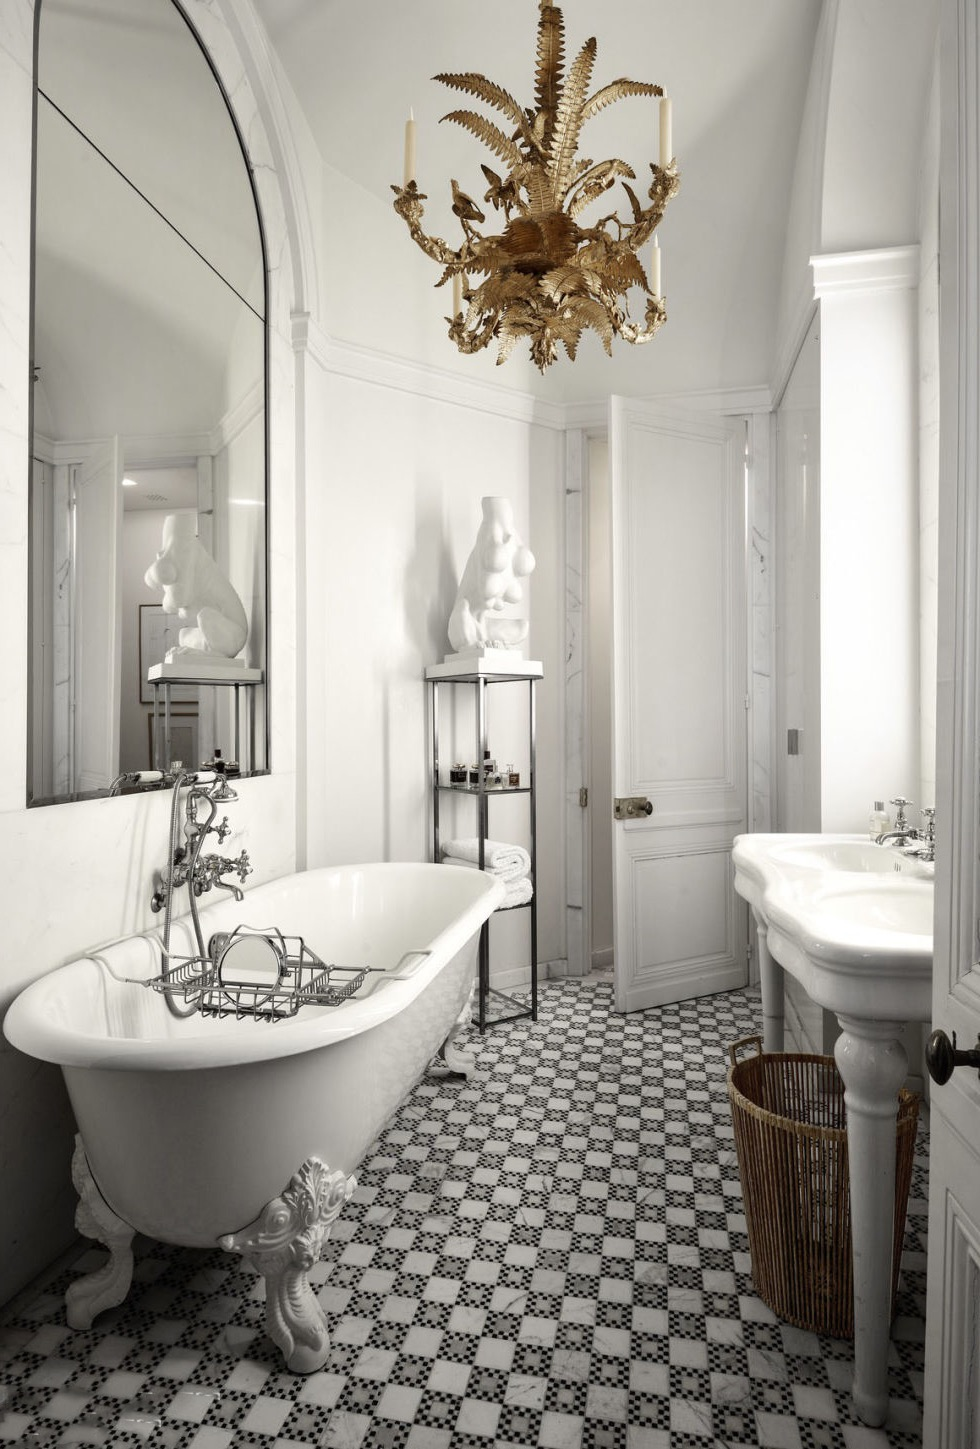 Classic Black And White Bathroom Interior Decor Theme (Image 5 of 14)